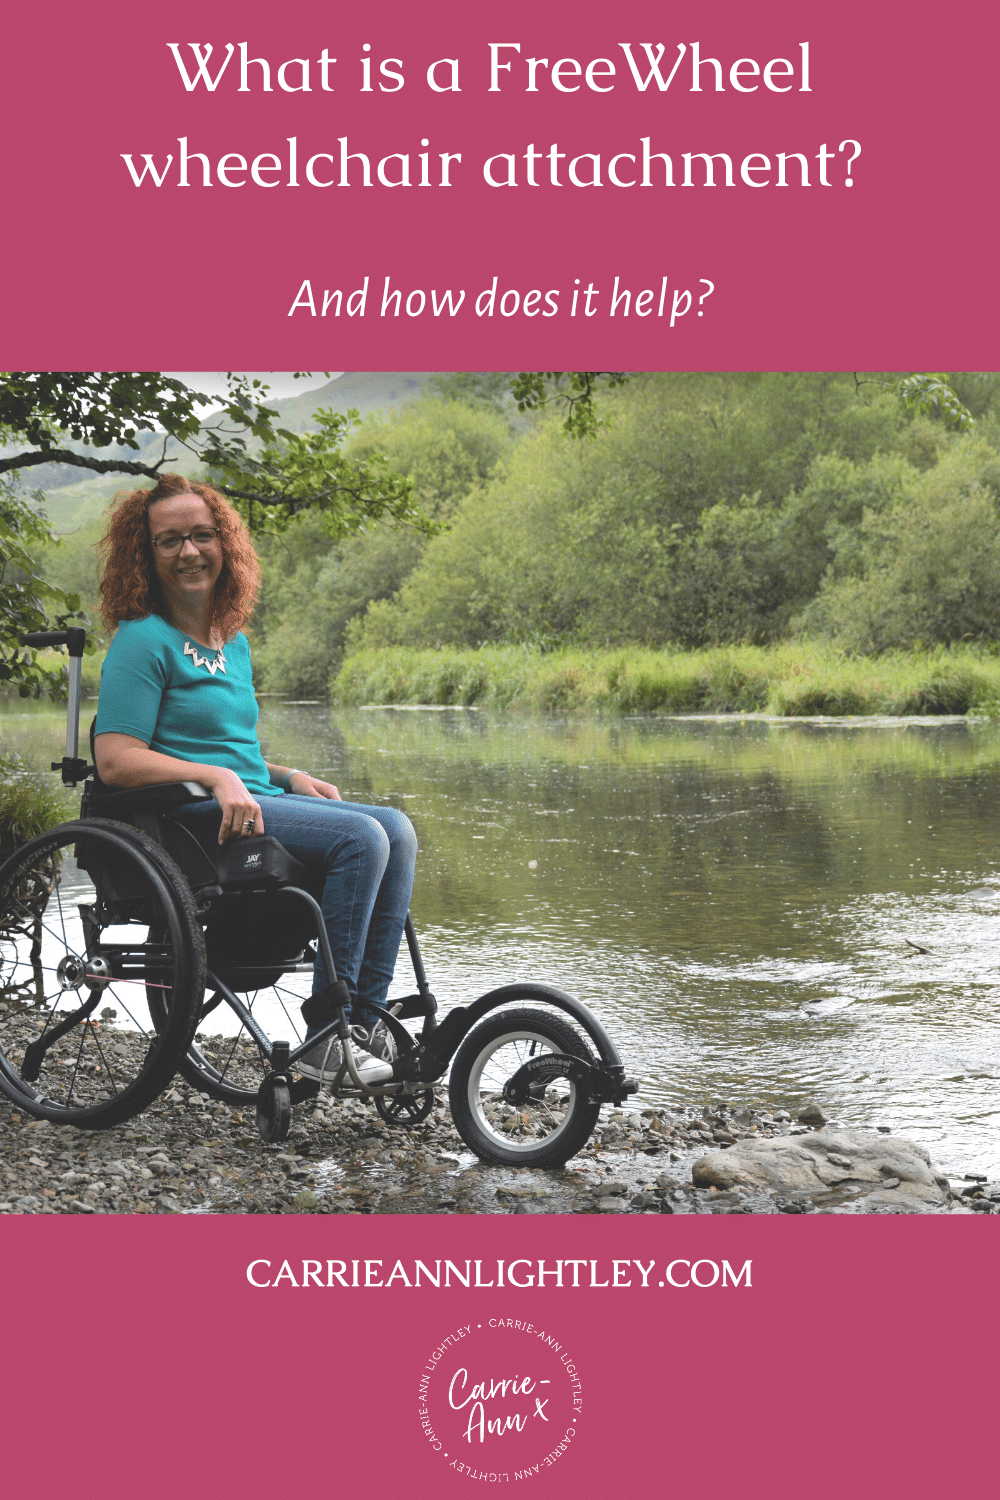 Top of image reads - What is a FreeWheel Wheelchair Attachment? And how does it help? Middle of image shows Carrie-Ann using the FreeWheel at White Moss in the Lake District. Bottom of image has this blog's website address and logo